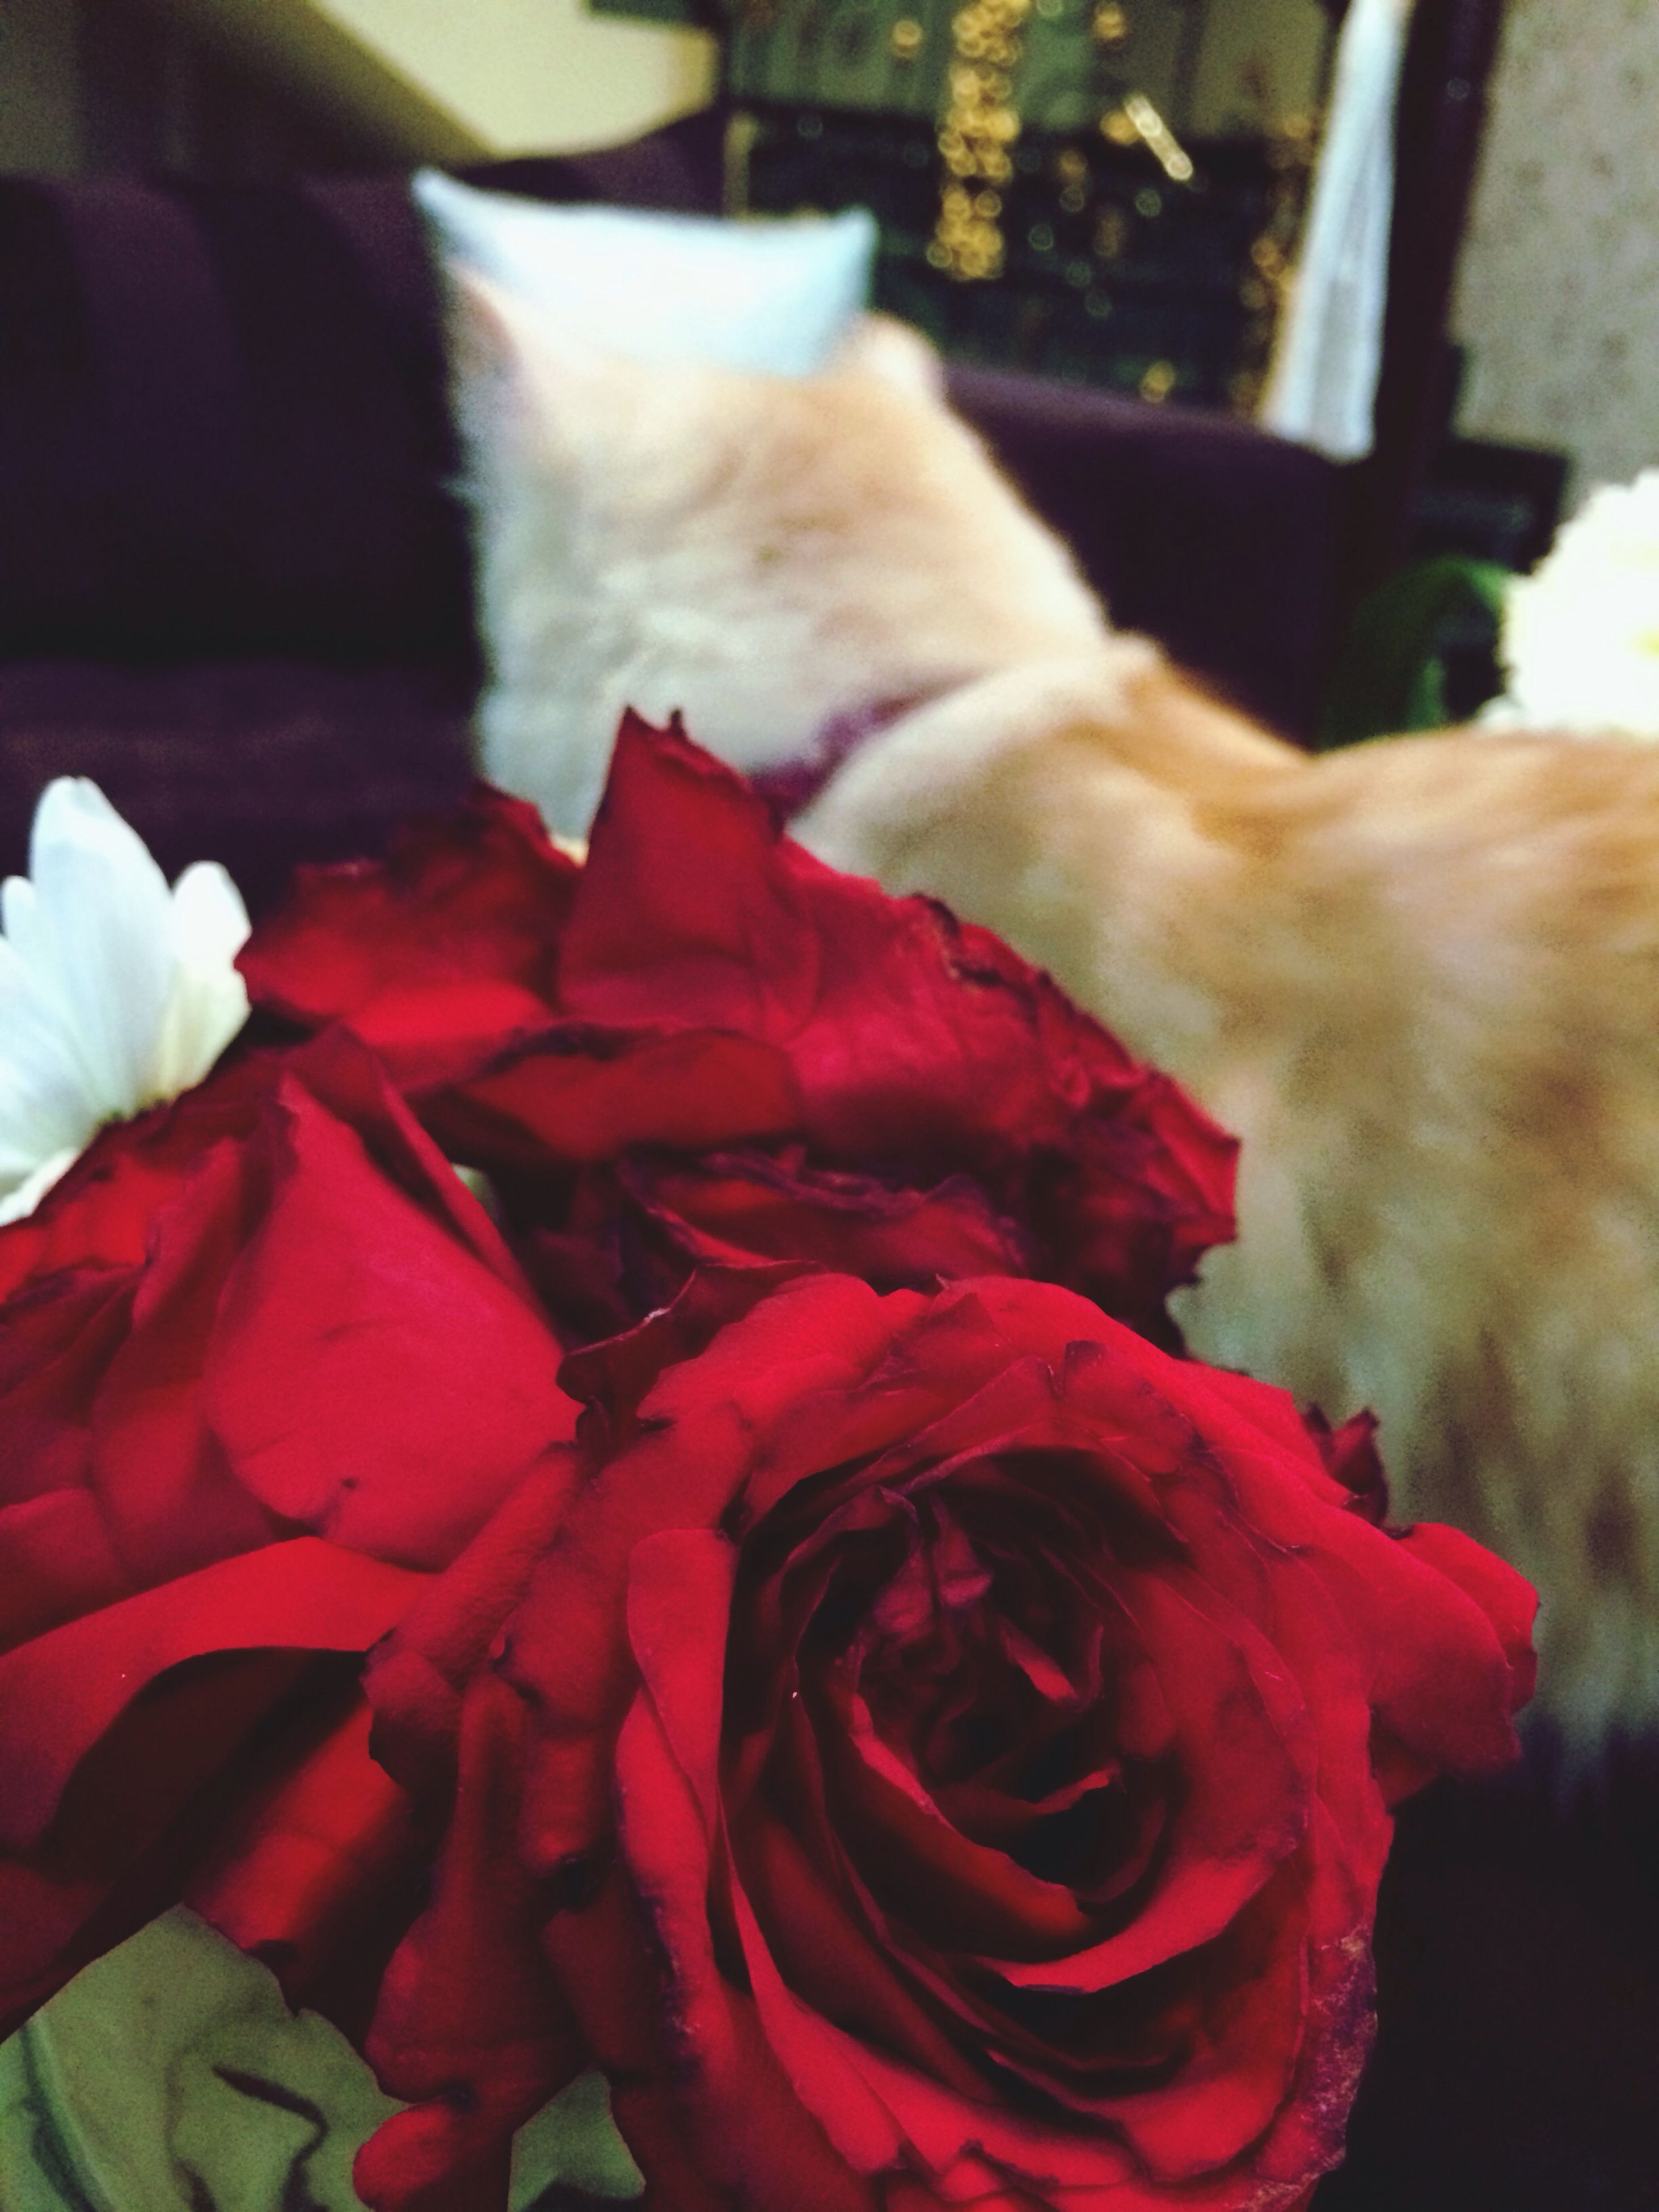 domestic animals, animal themes, pets, mammal, indoors, one animal, flower, red, close-up, domestic cat, focus on foreground, petal, sleeping, cat, relaxation, bed, fragility, home interior, no people, eyes closed